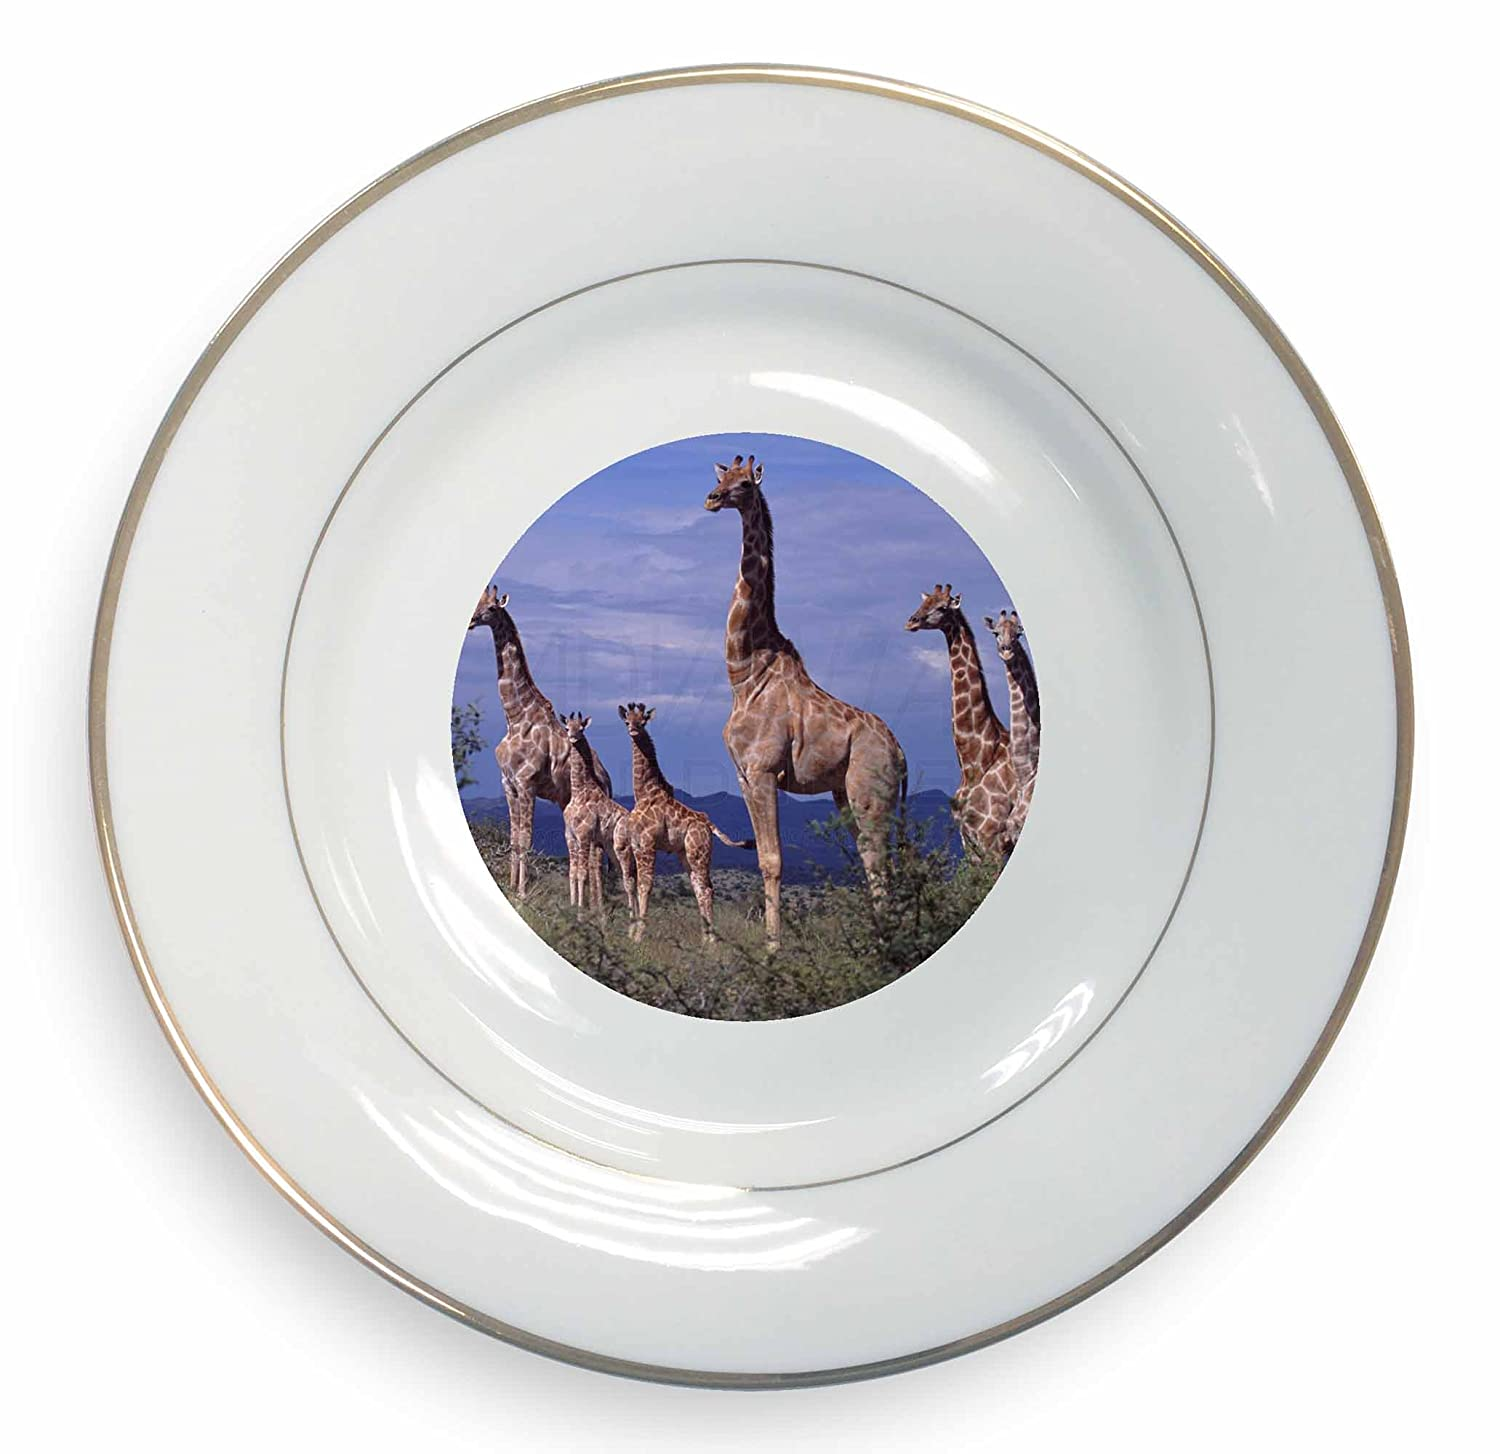 Giraffes Gold Rim Plate in Gift Box Christmas Present Advanta Products